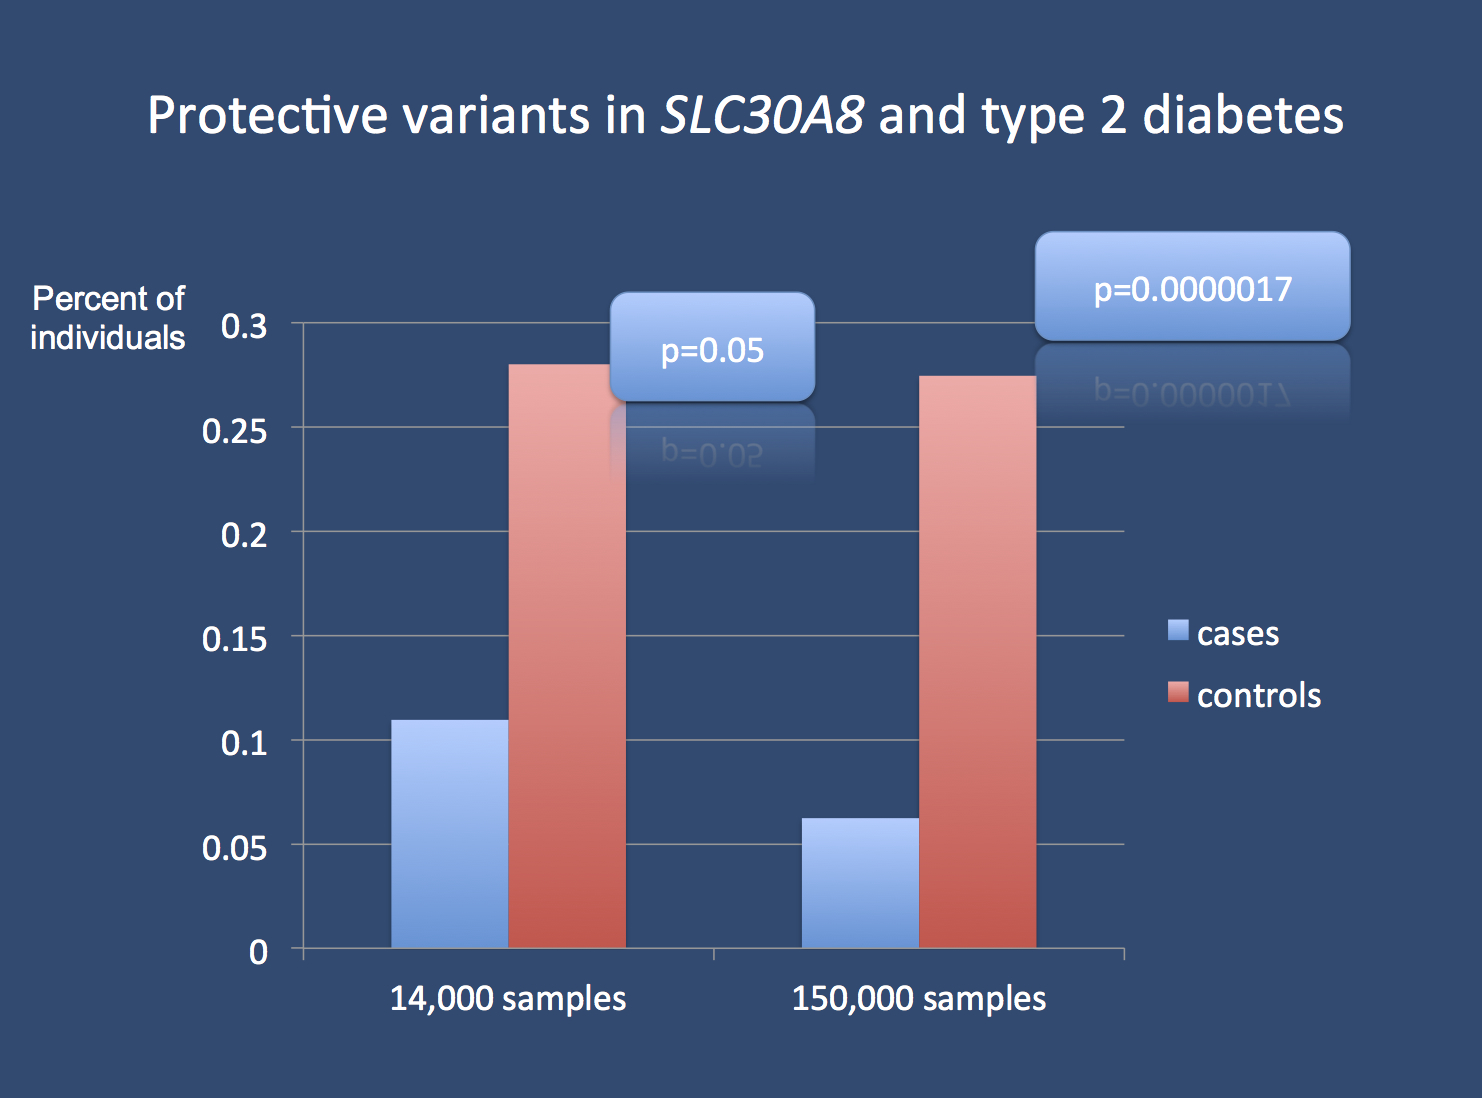 The study by Flannick and collaborators in a nutshell: rare loss-of-function variants in SLC30A8 are overrepresented in unaffected individuals and therefore protect against type 2 diabetes. As these variants are rare (<1%), a cohort of 14,000 individuals is only sufficiently powered to provide suggestive, nominal evidence. Even with 150,000 individuals, the significance level for this association has only barely reached genome-wide significance. The magnitude of this study provides an interesting template for further studies in complex human diseases that try to investigate rare protective or risk factors.